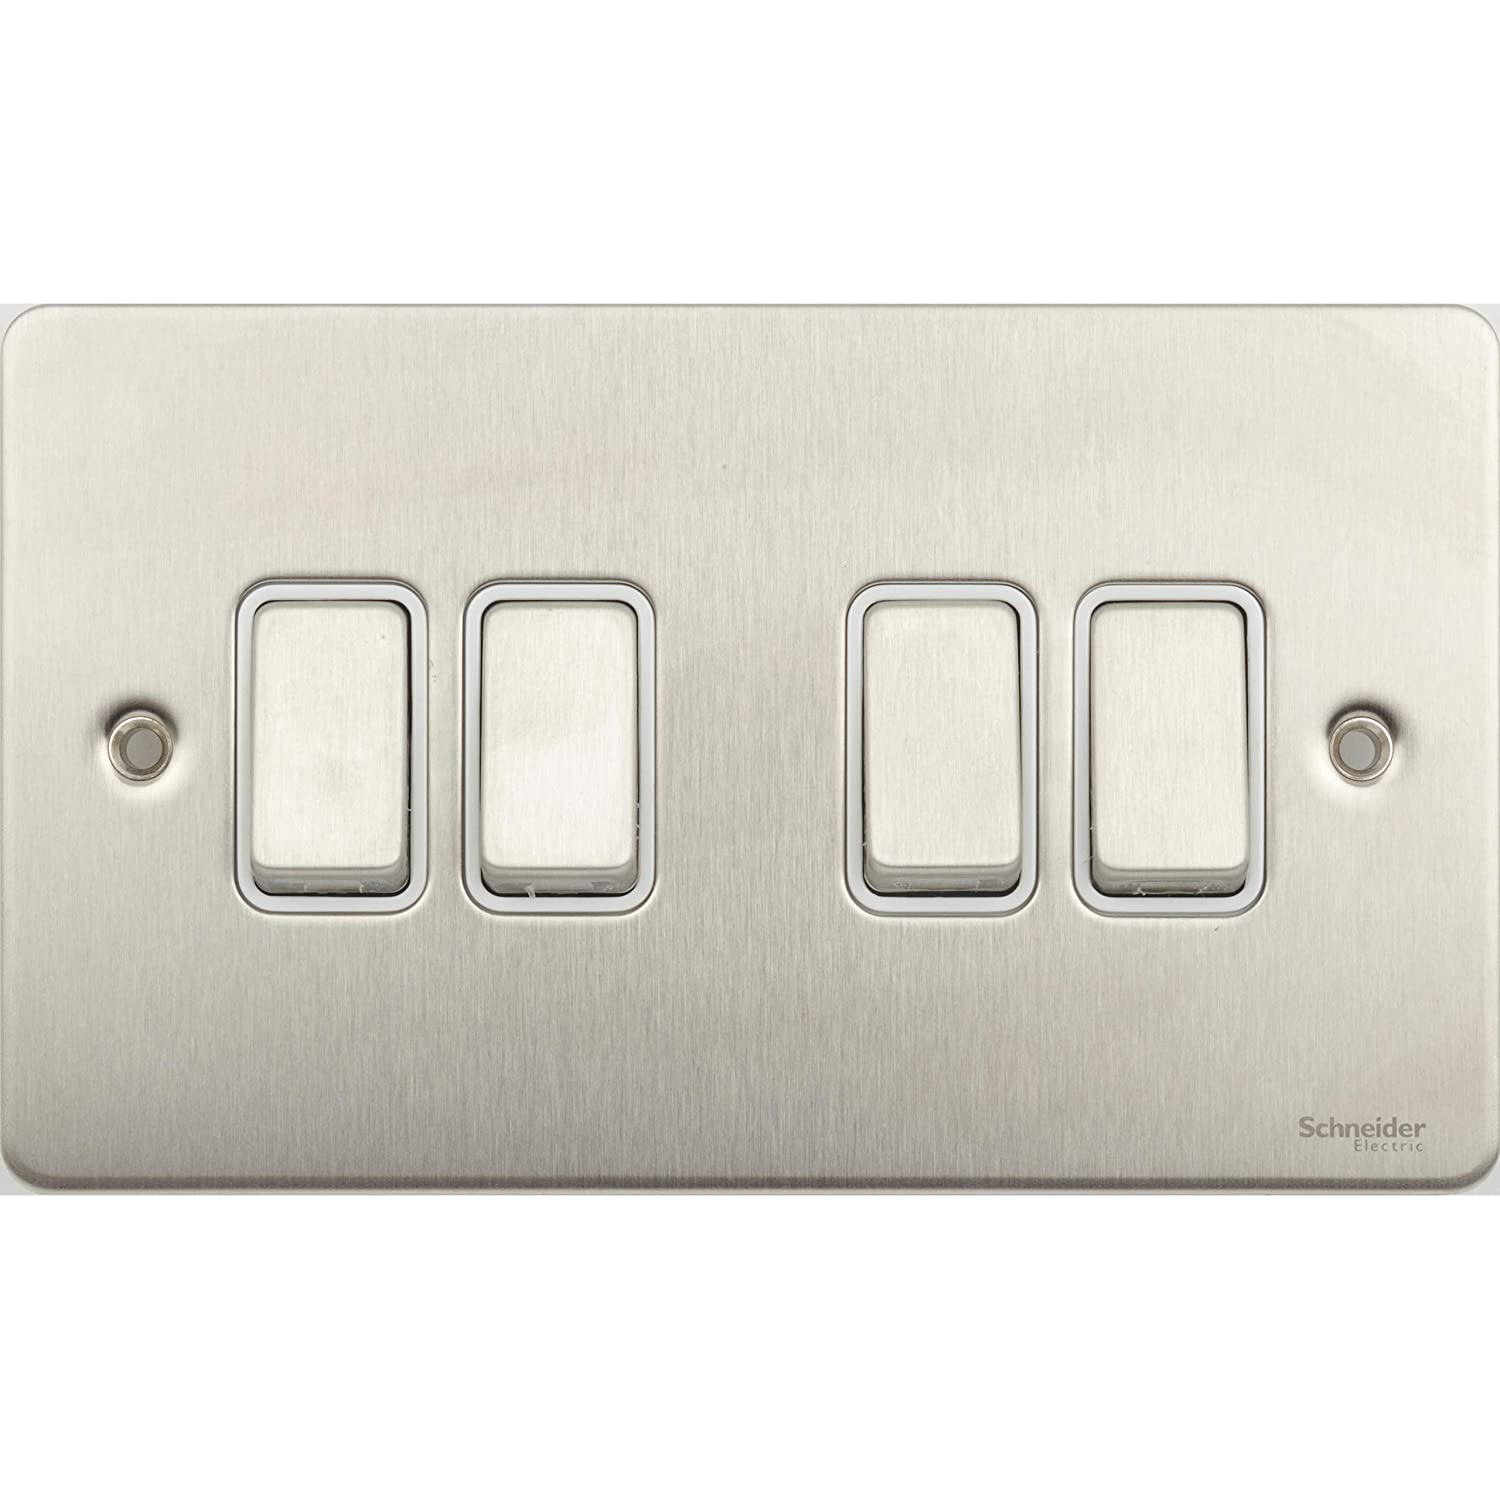 Schneider Electric GU1242WSS Ultimate Flat Plate Stainless Steel 4 Gangs Pack of 1 1-Pole 2-Way Plate Switch